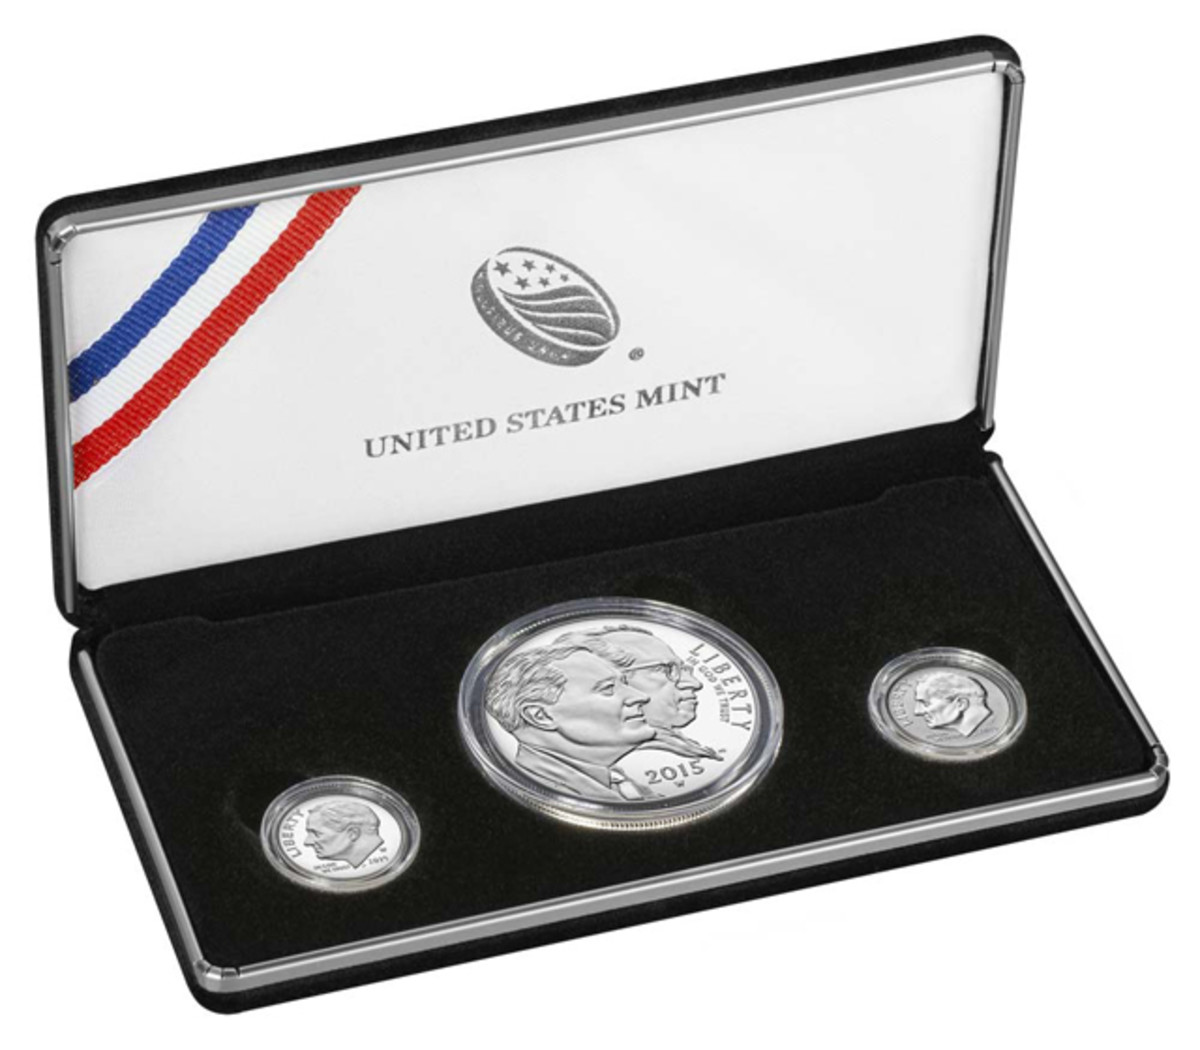 In eight days this three-coin set sold out.